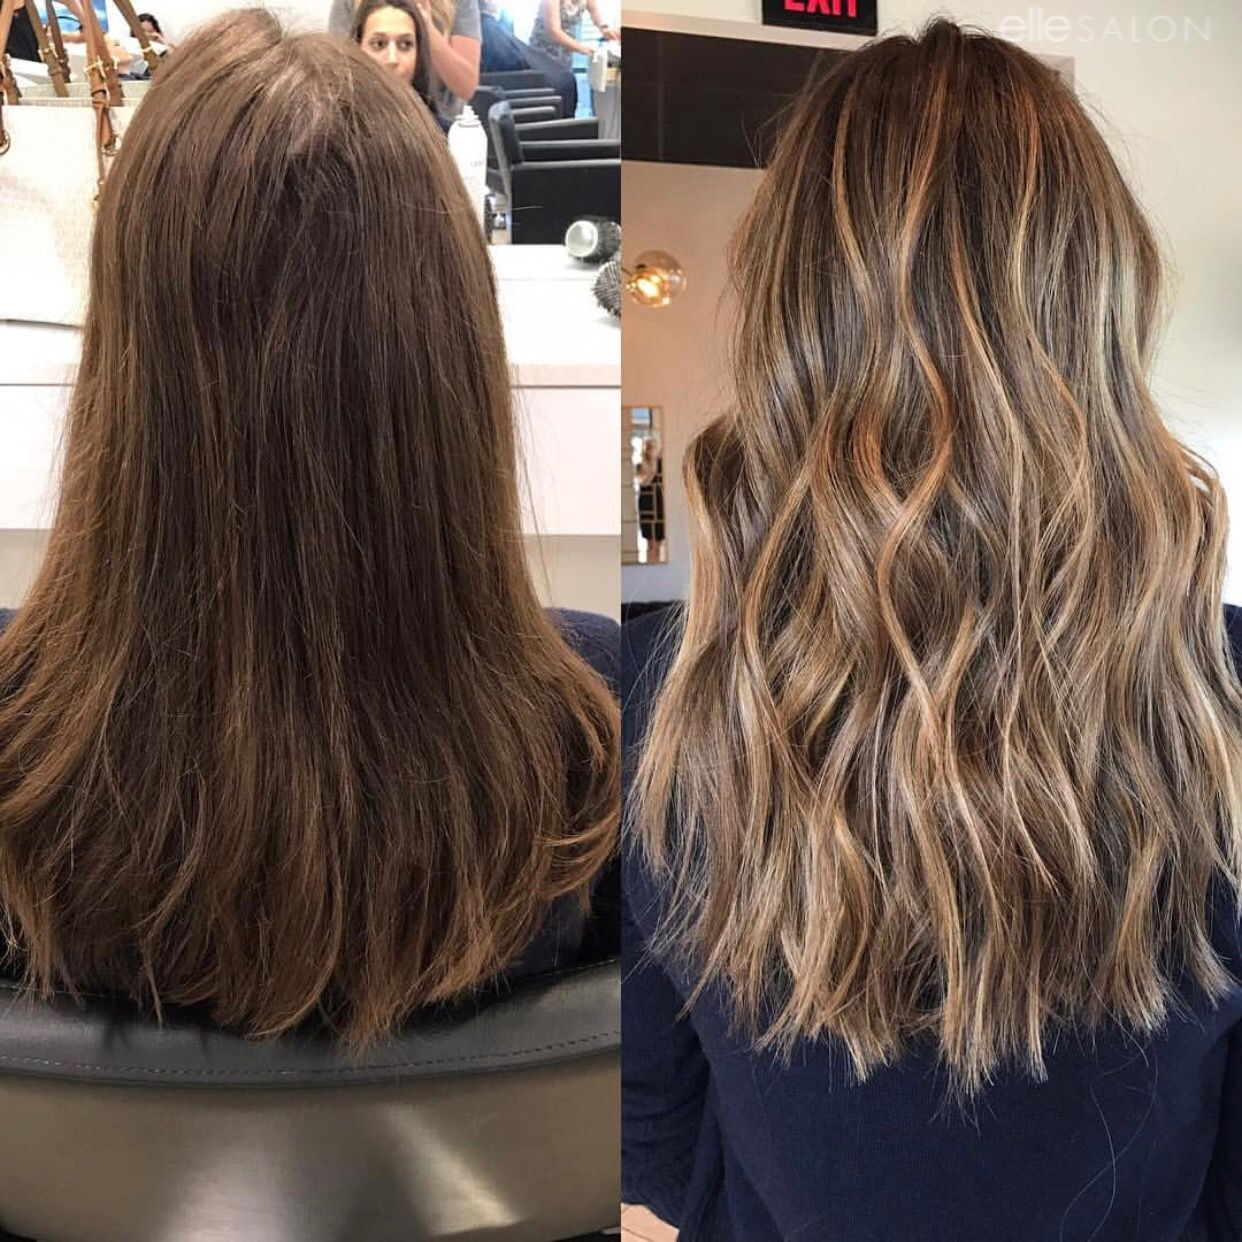 Blown Away With Another Crazy Transformation By @renee